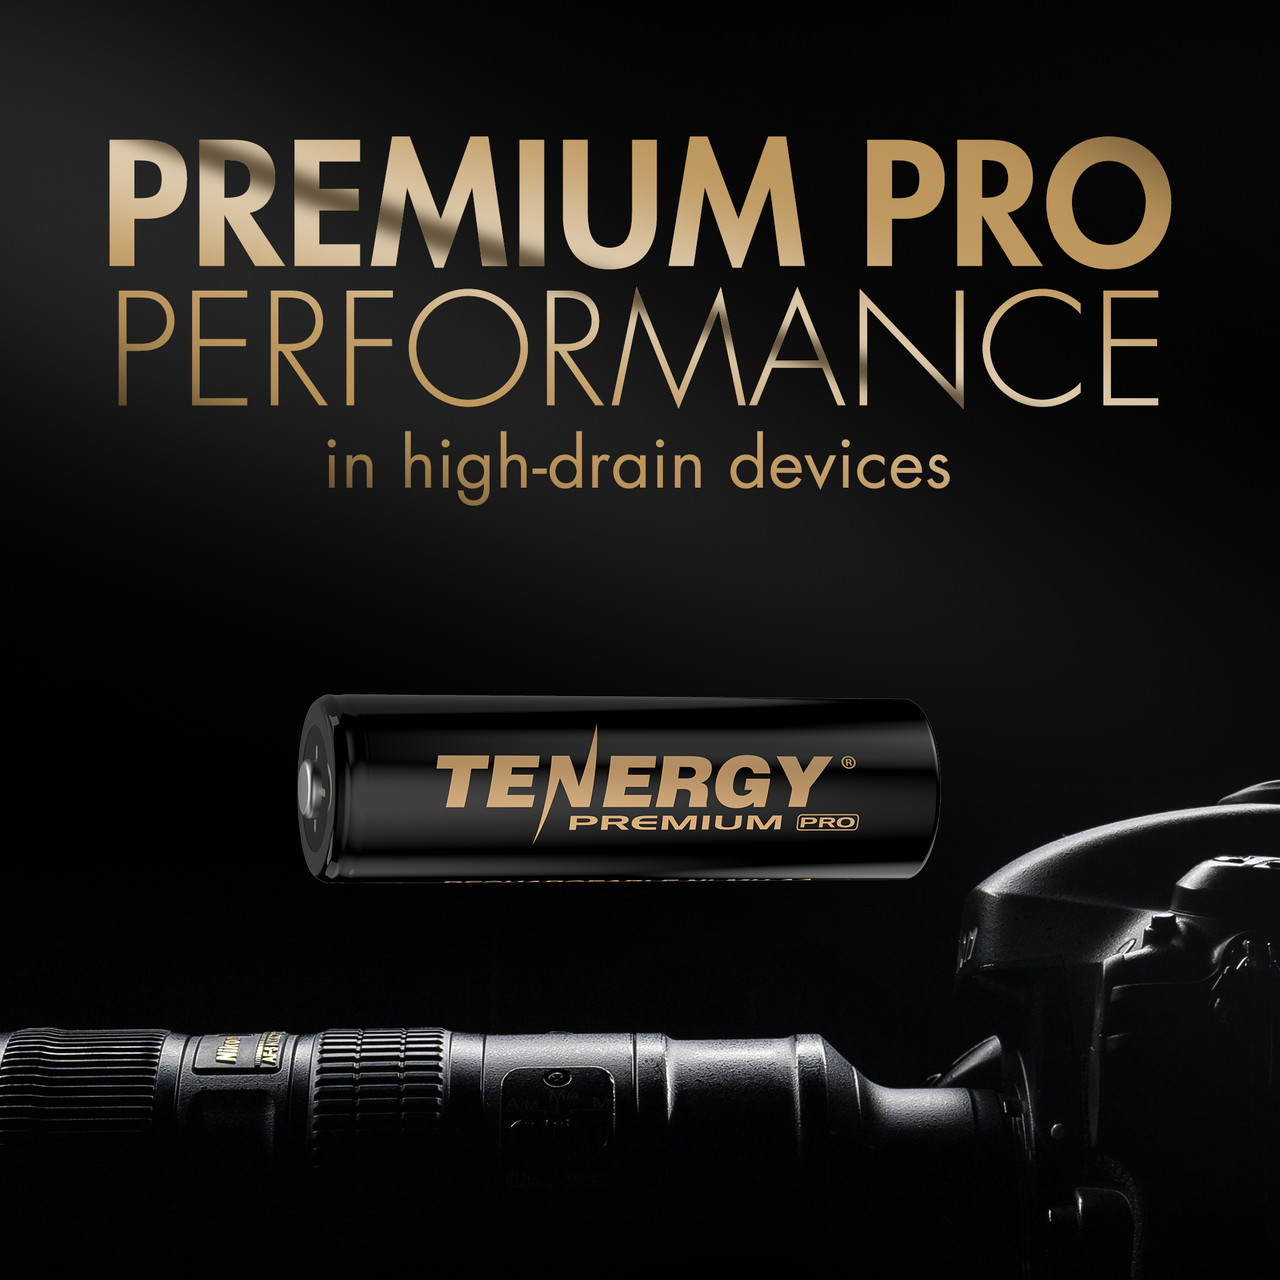 Tenergy Premium PRO Rechargeable AA Batteries, High Capacity Low Self-Discharge 2800mAh NiMH AA Battery, 4 Pack